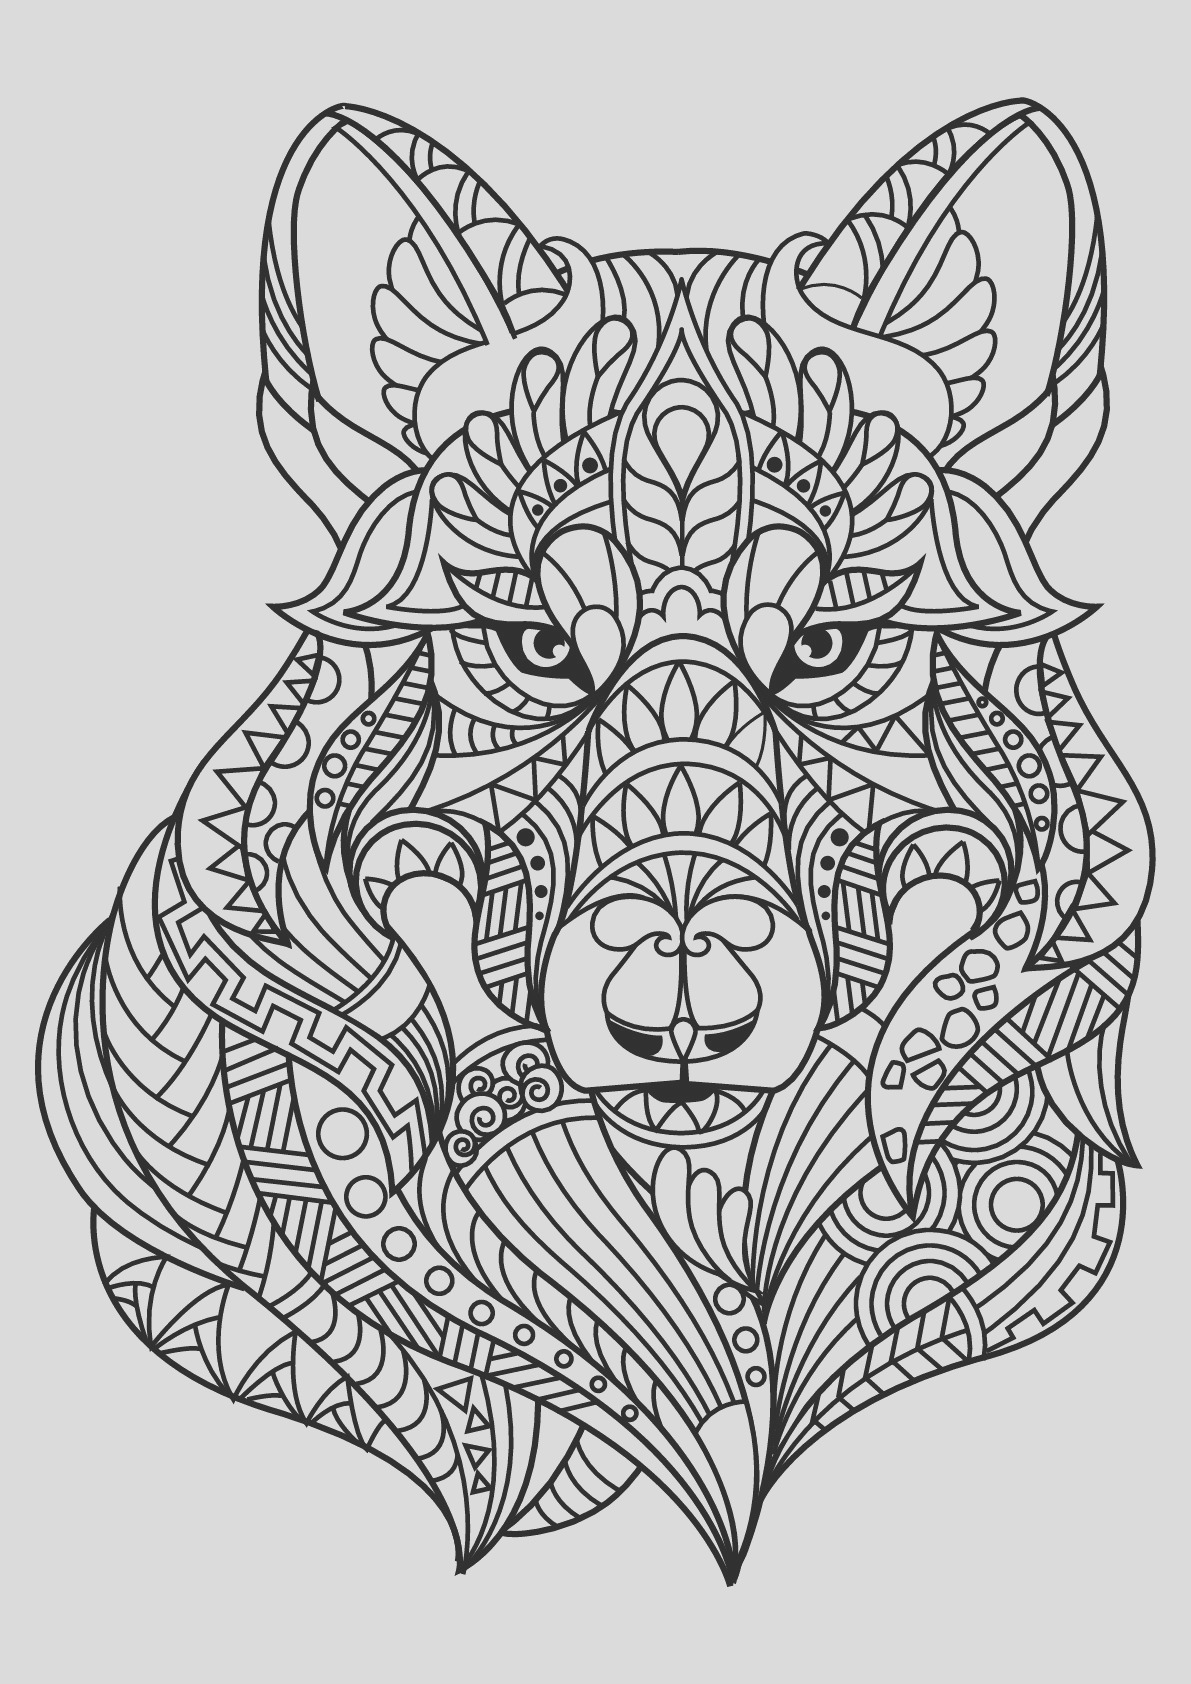 image=wolf Coloring for kids wolf 1